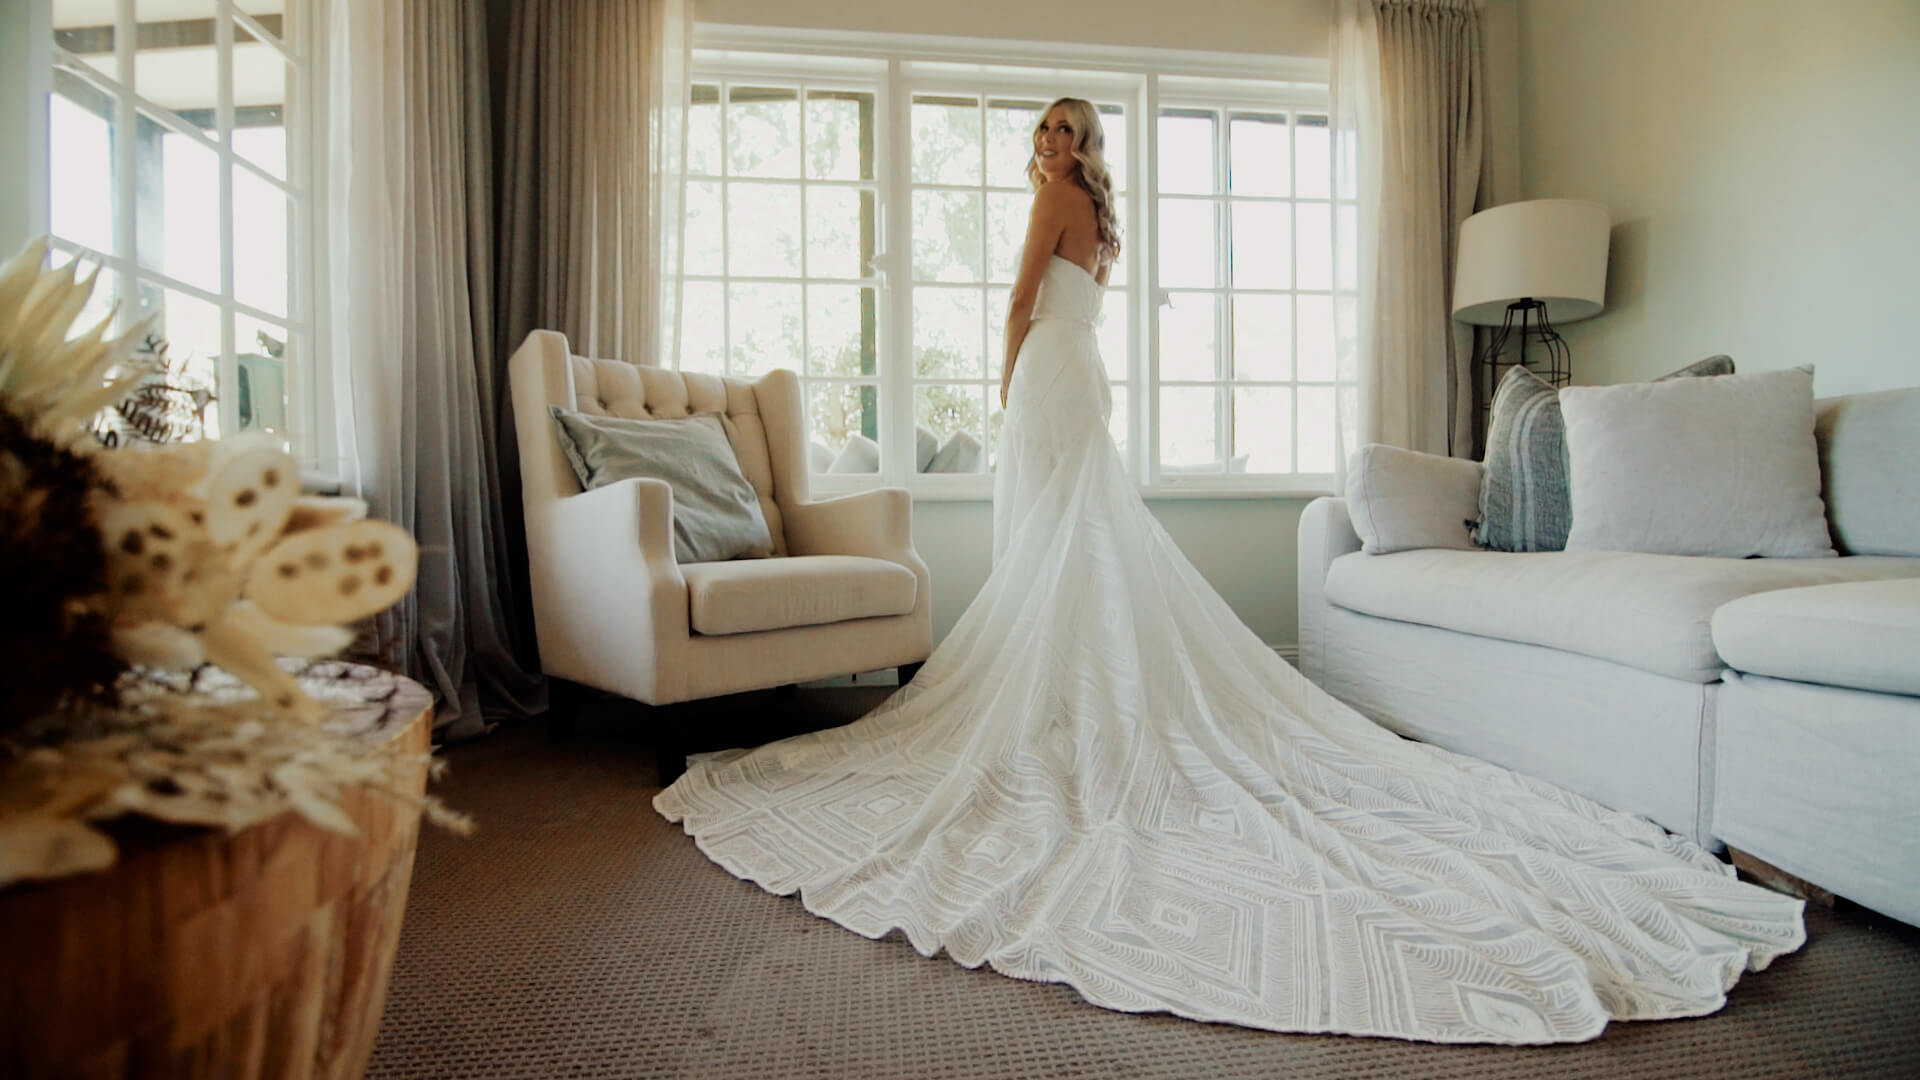 wedding film still frame: bride standing in front of a window revealing full wedding dress